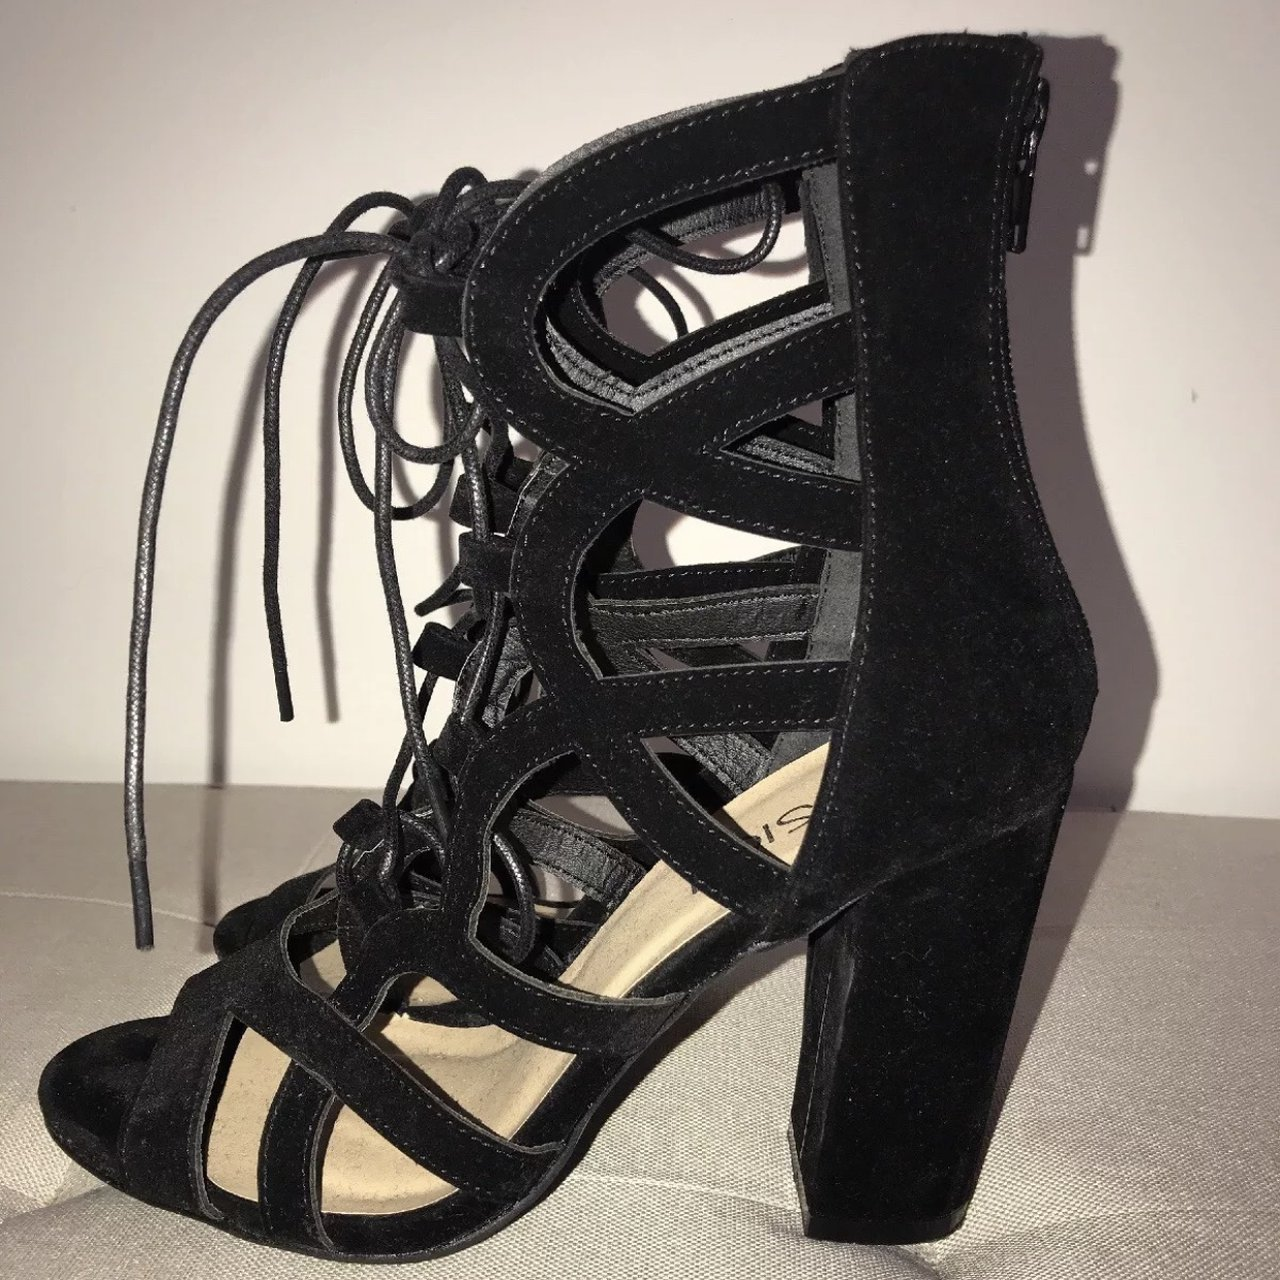 29bc1081bdd Women s black lace up strappy. Sold. £9.99 · Women s ladies block high heel